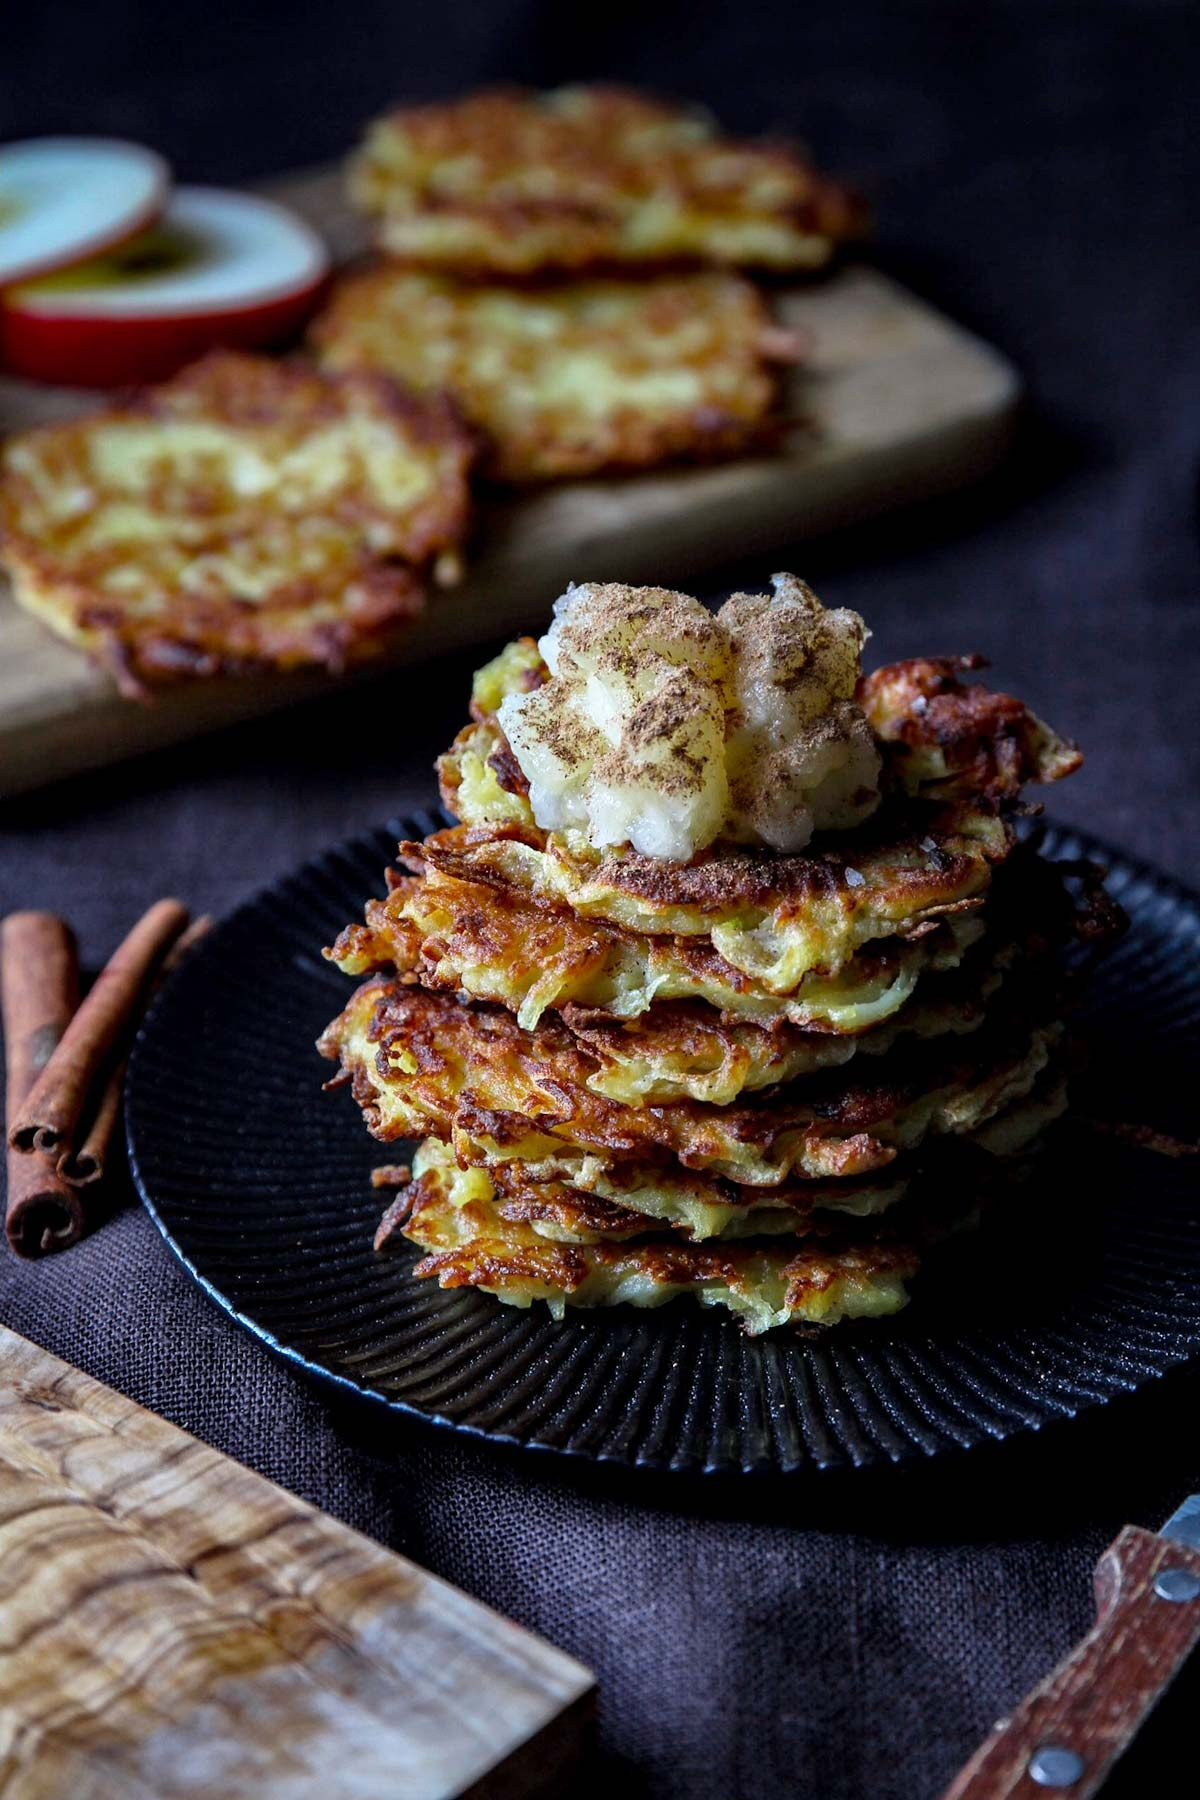 A stack of potato fritters on a plate, topped with applesauce.